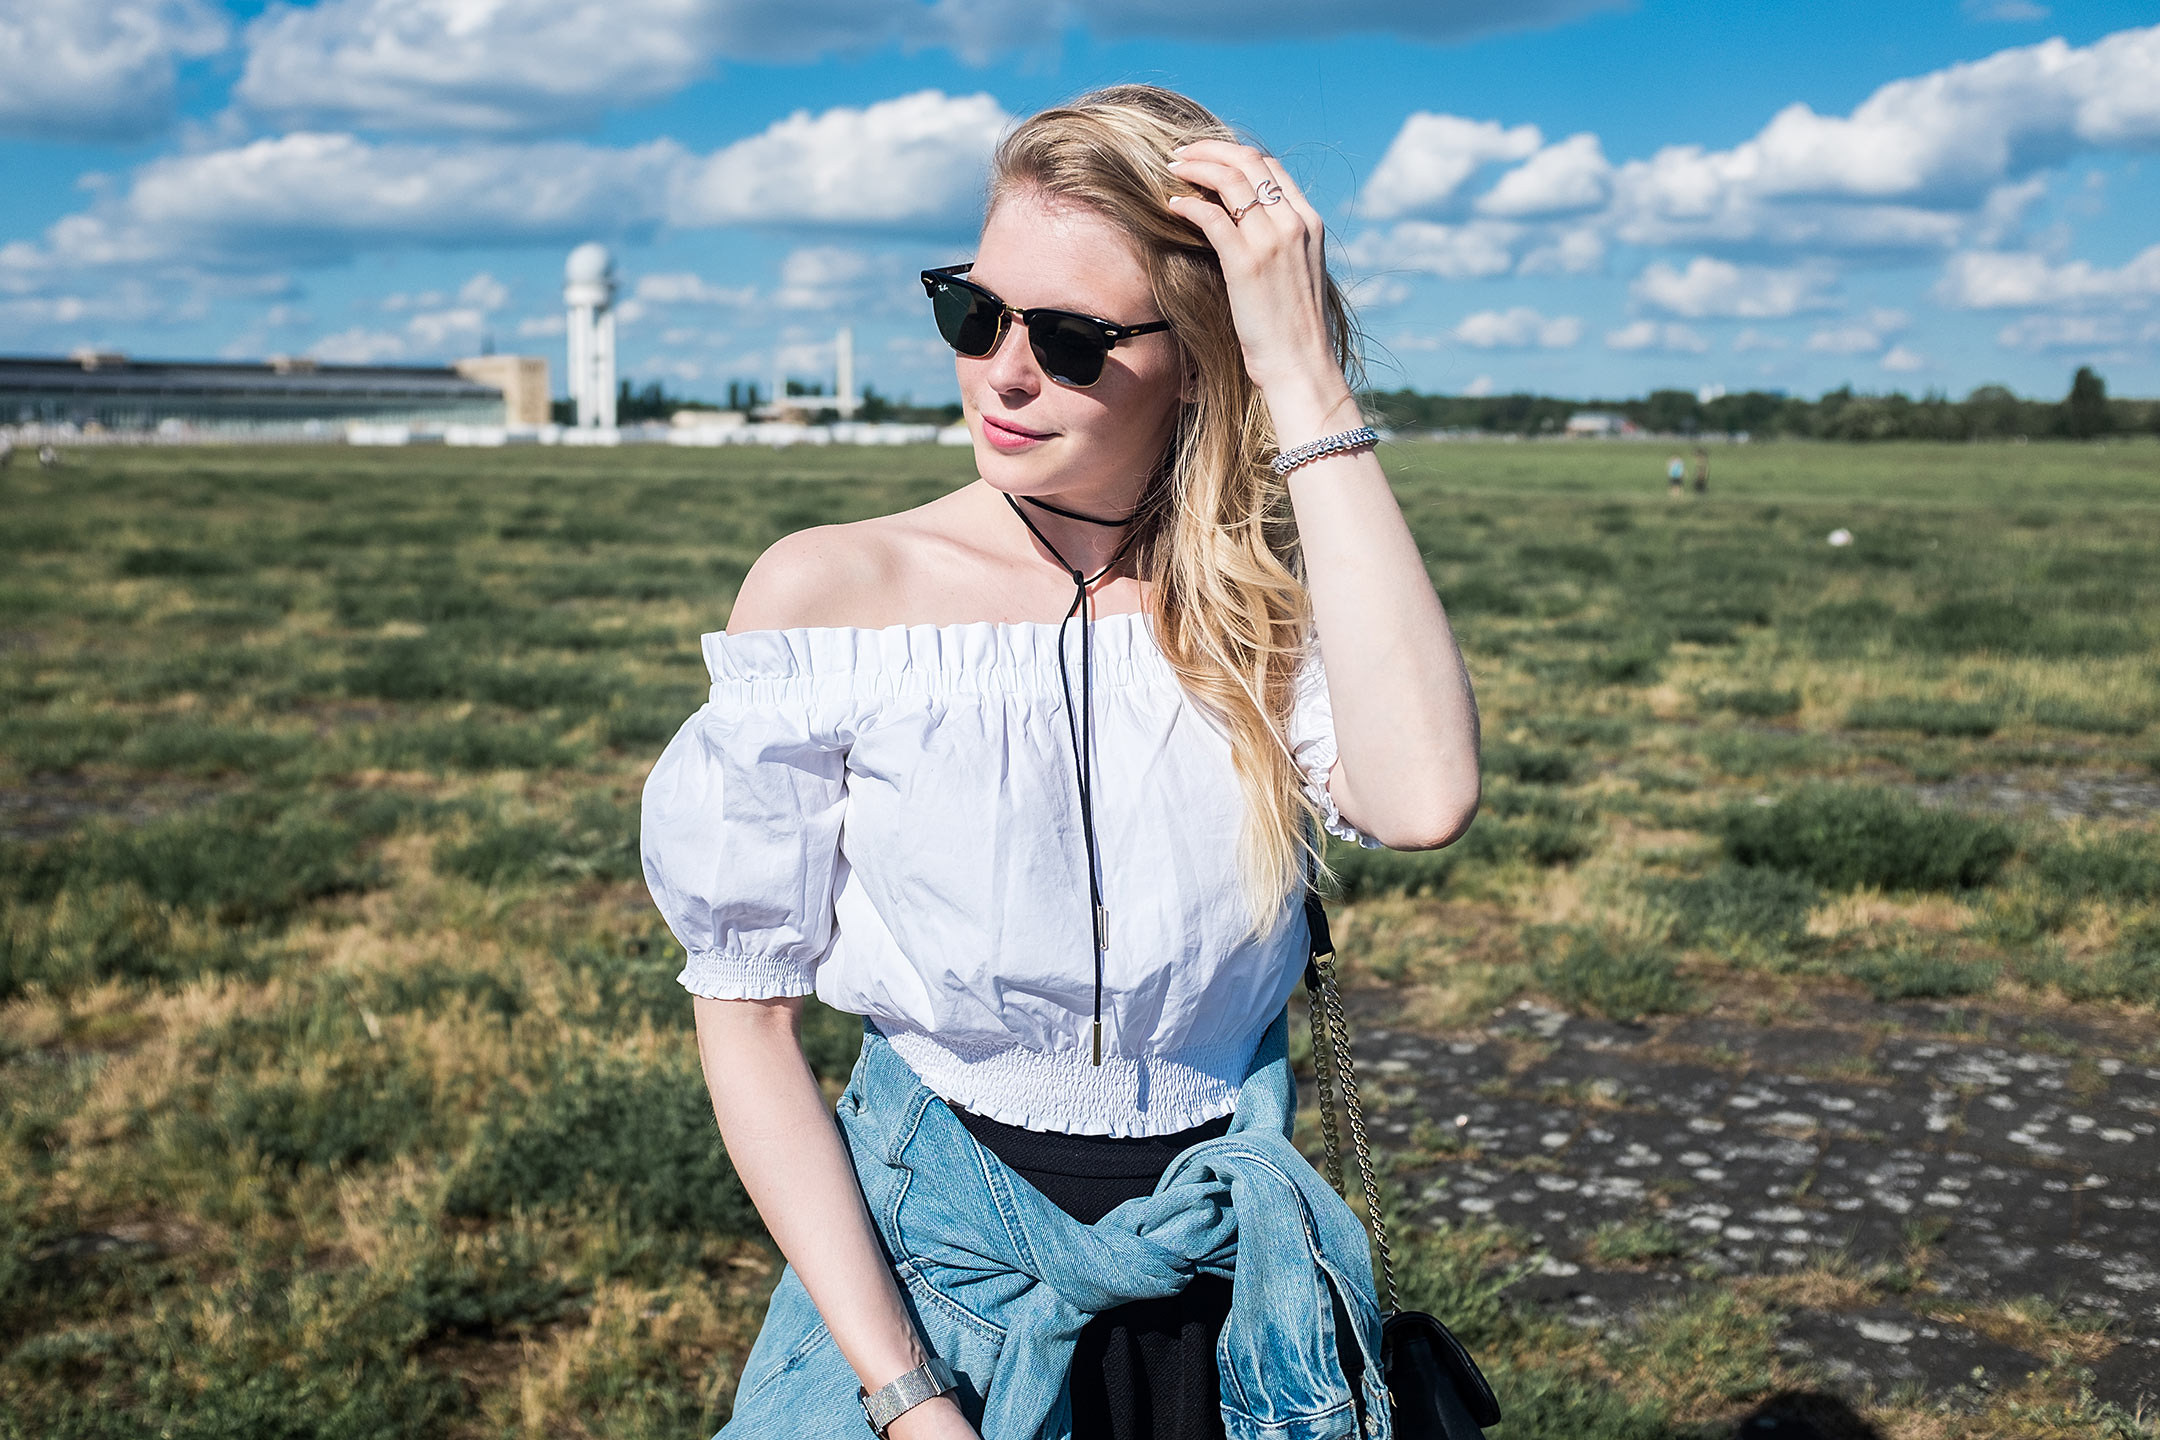 Off-Shoulder Bluse Outfit Inspiration Sunnyinga Fashion Blog Düsseldorf